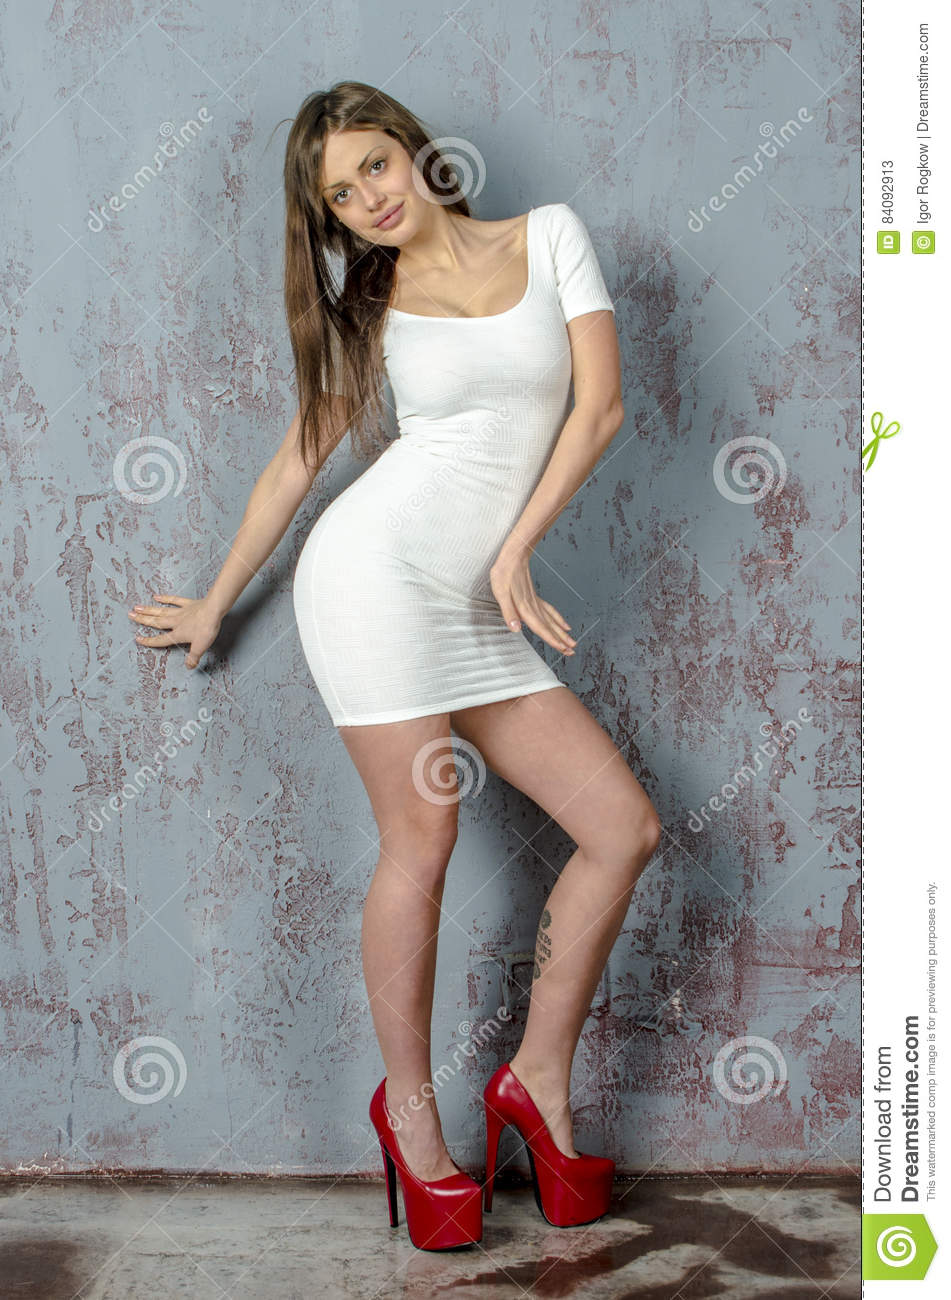 Young girl with a beautiful figure in a trendy white dress